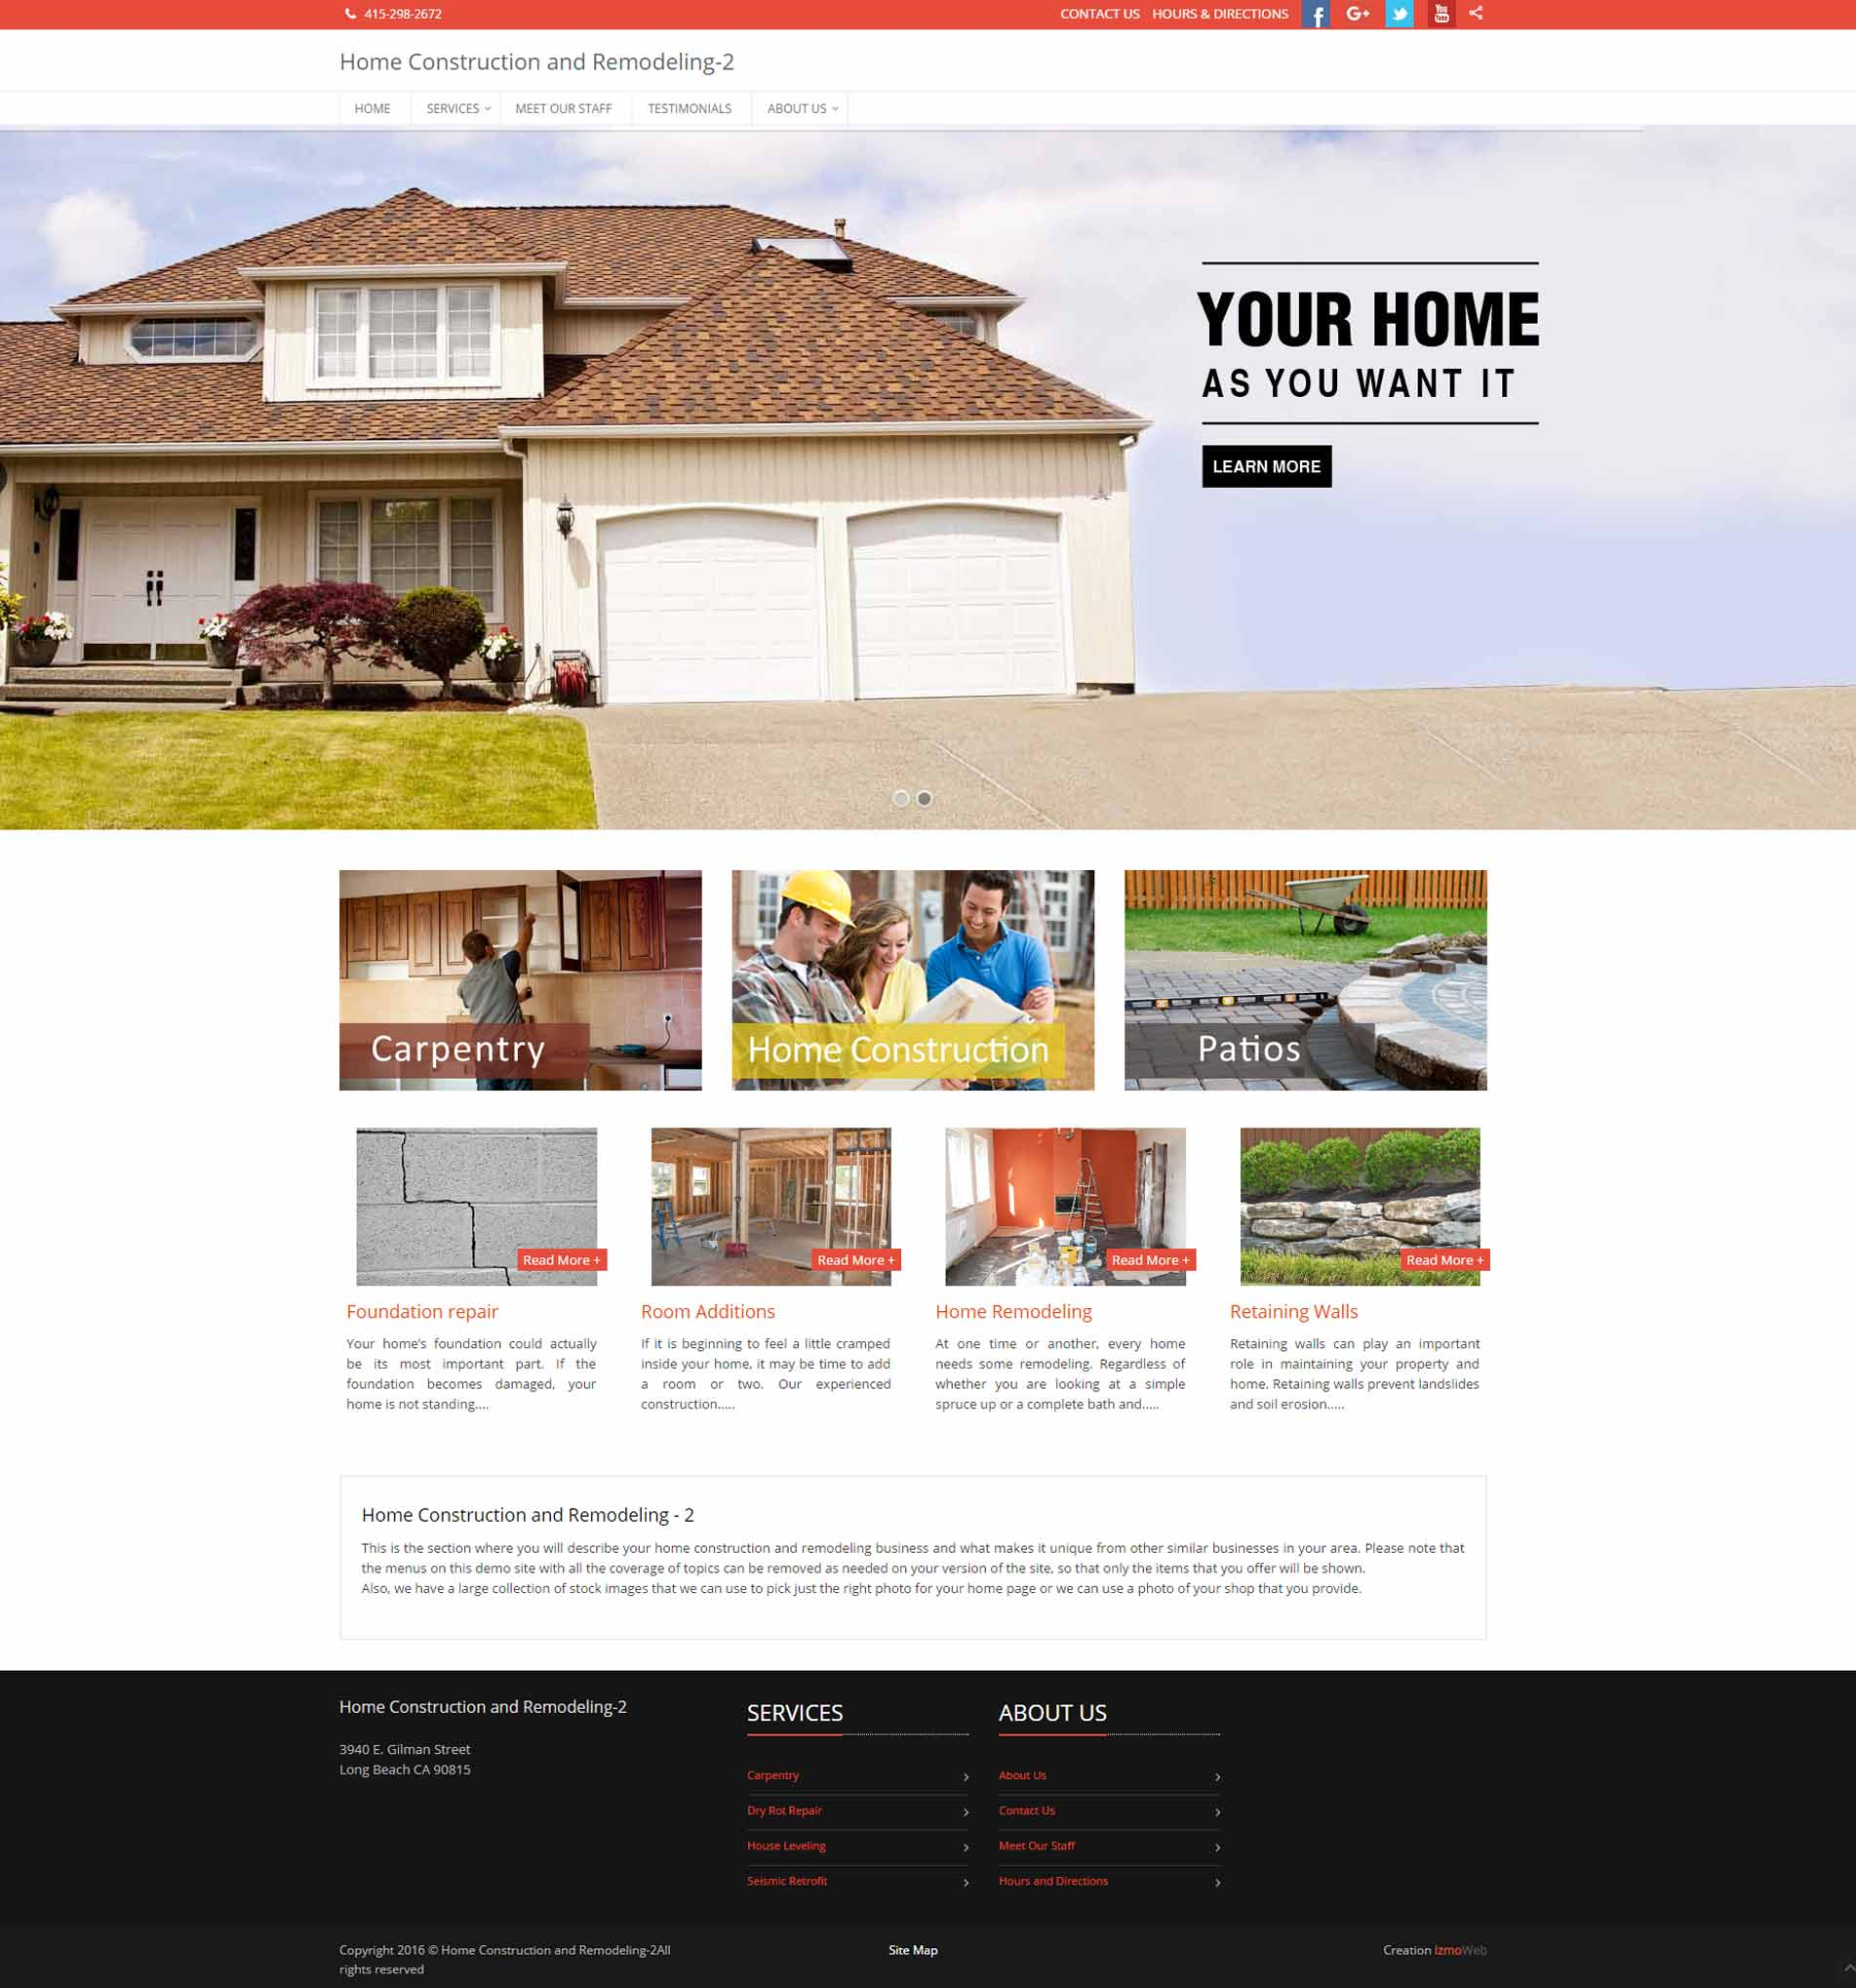 home construction & remodeling website in 15 minutes - izmoweb